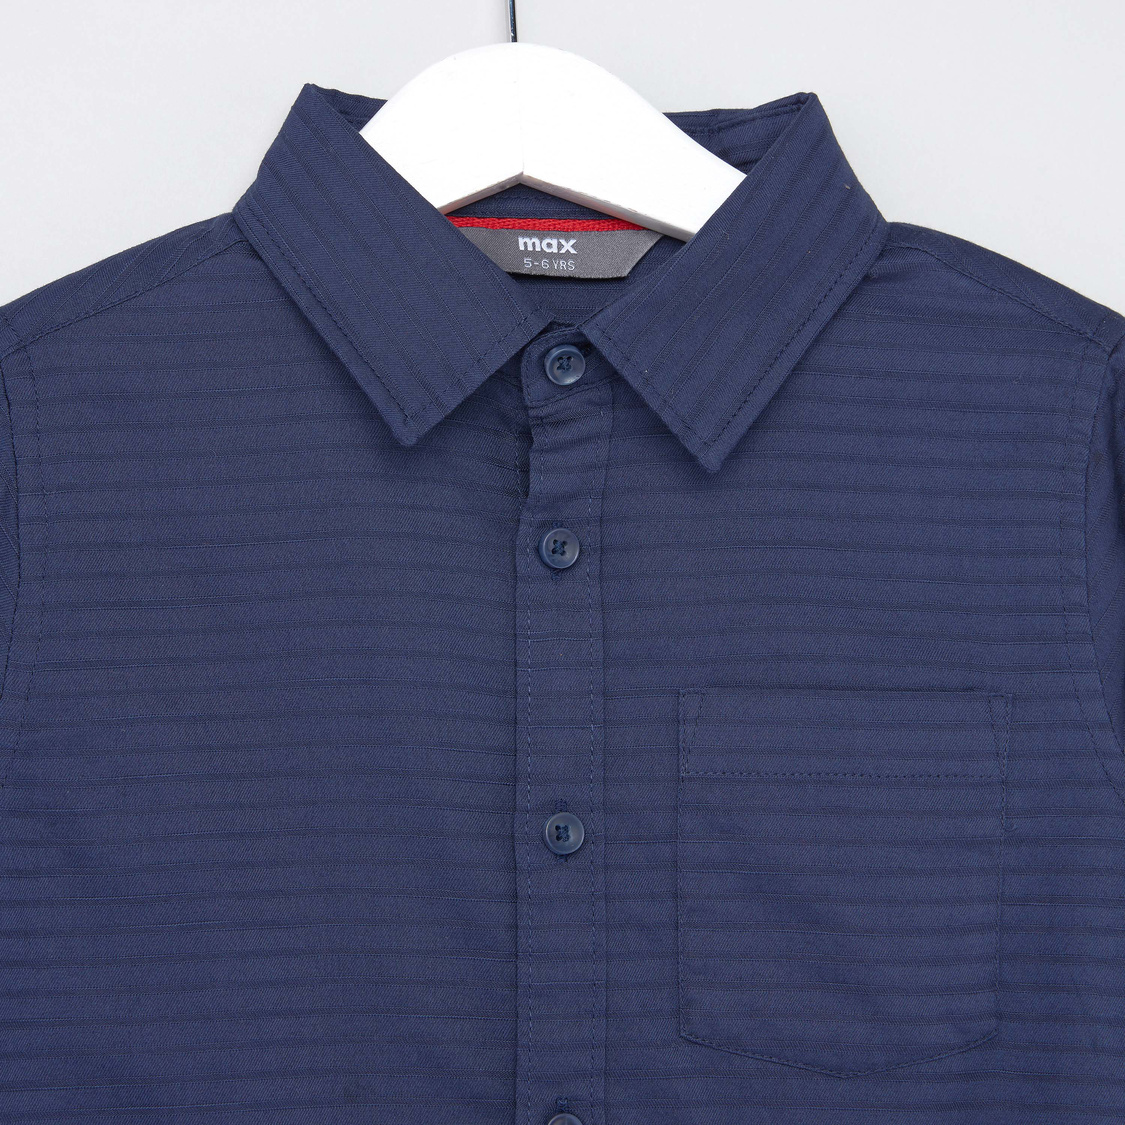 Textured Collared Shirt with Patch Pocket and Long Sleeves